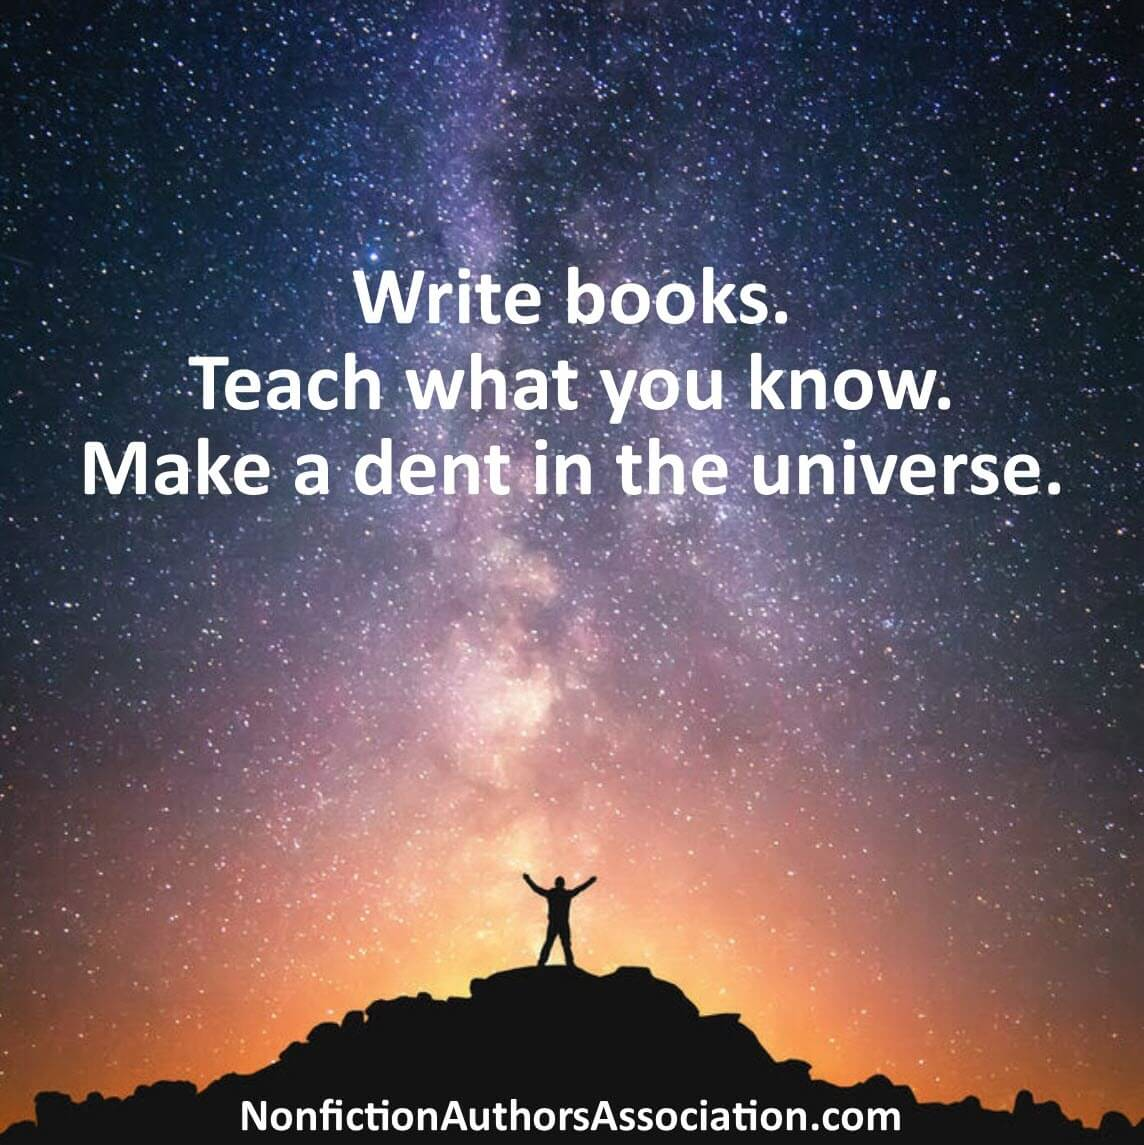 join the nonfiction authors association - make a dent in the universe